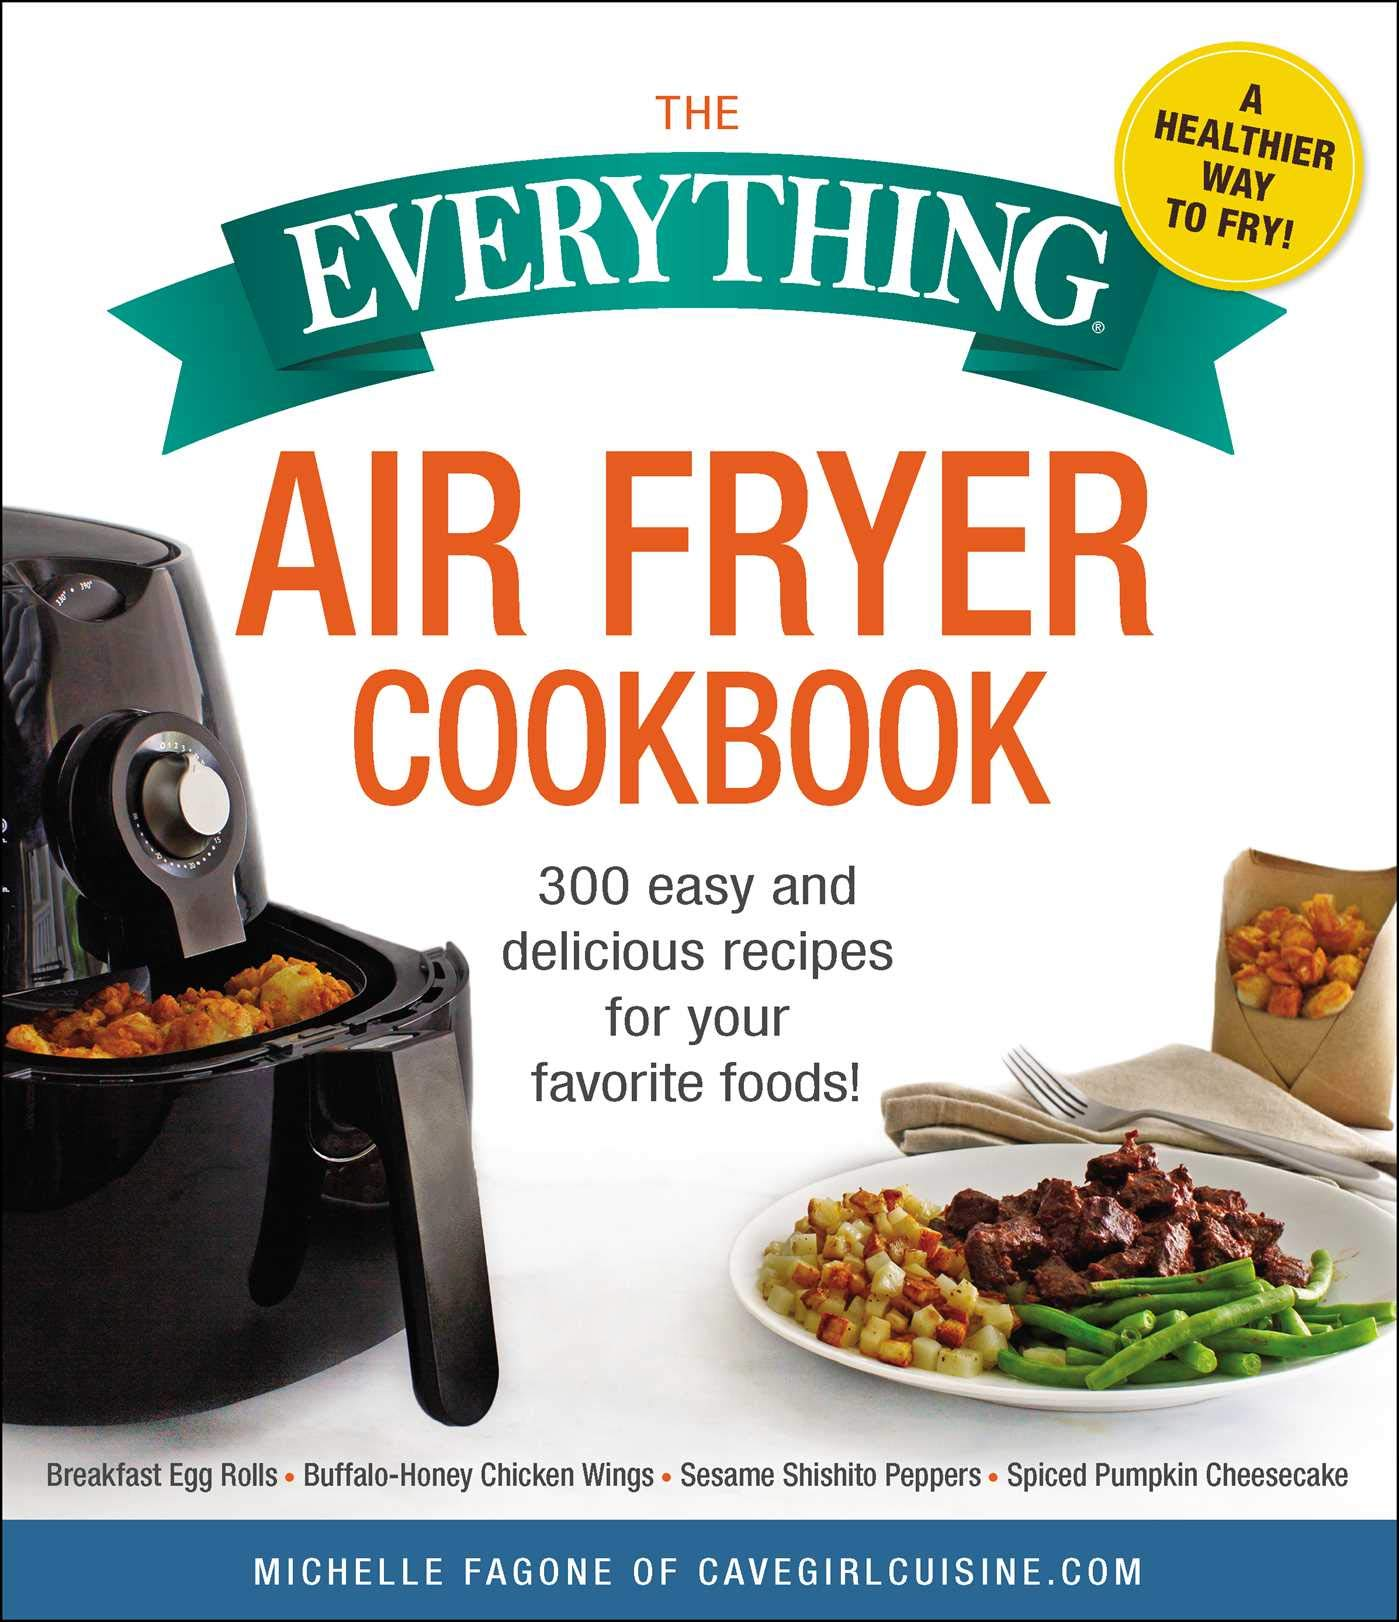 Buy The Everything Air Fryer Cookbook: 300 Easy and Delicious Recipes for  Your Favorite Foods! Book Online at Low Prices in India | The Everything  Air Fryer ...